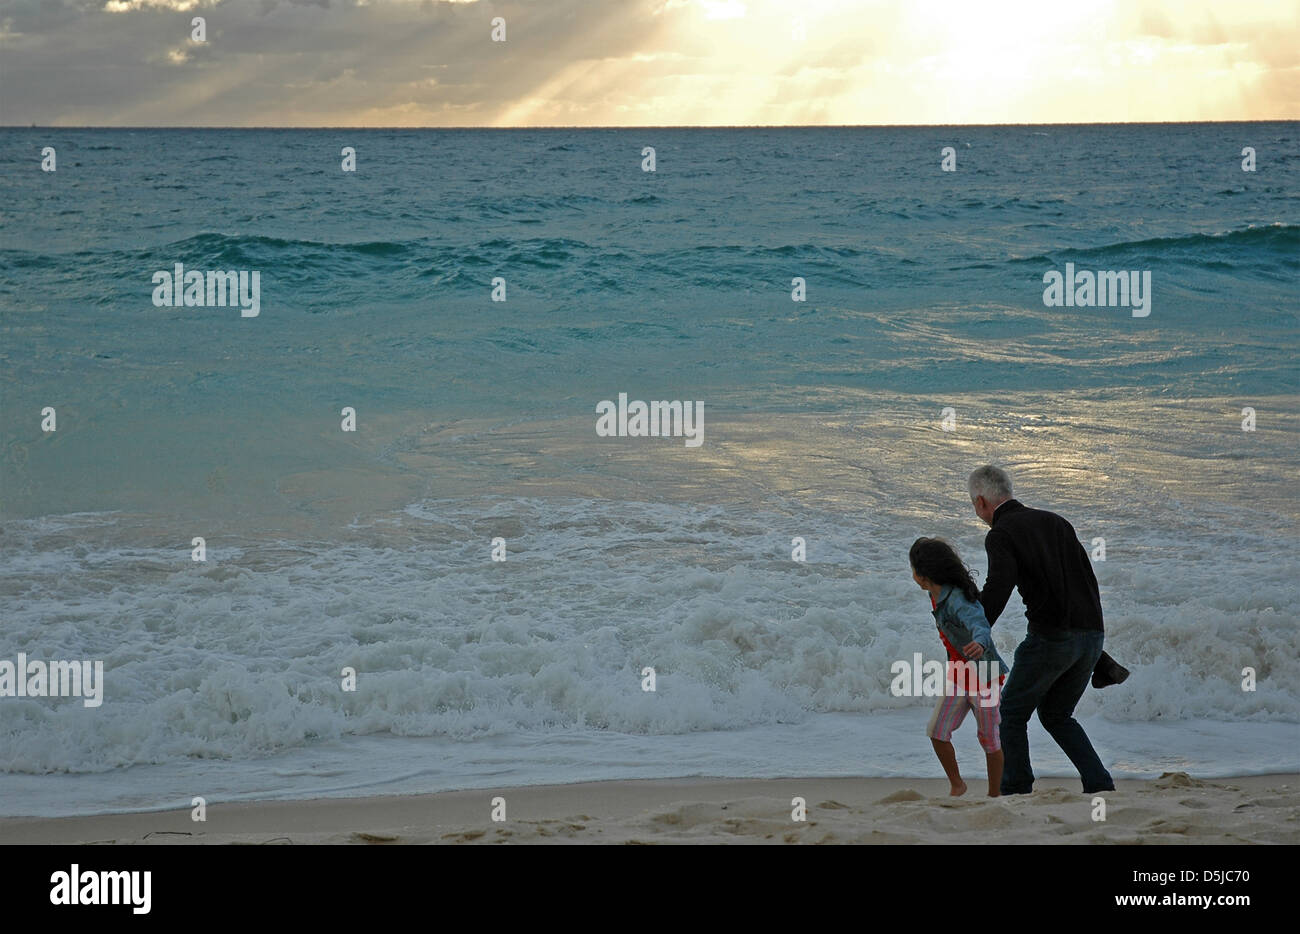 Father and daughter dodging waves at sunset. - Stock Image